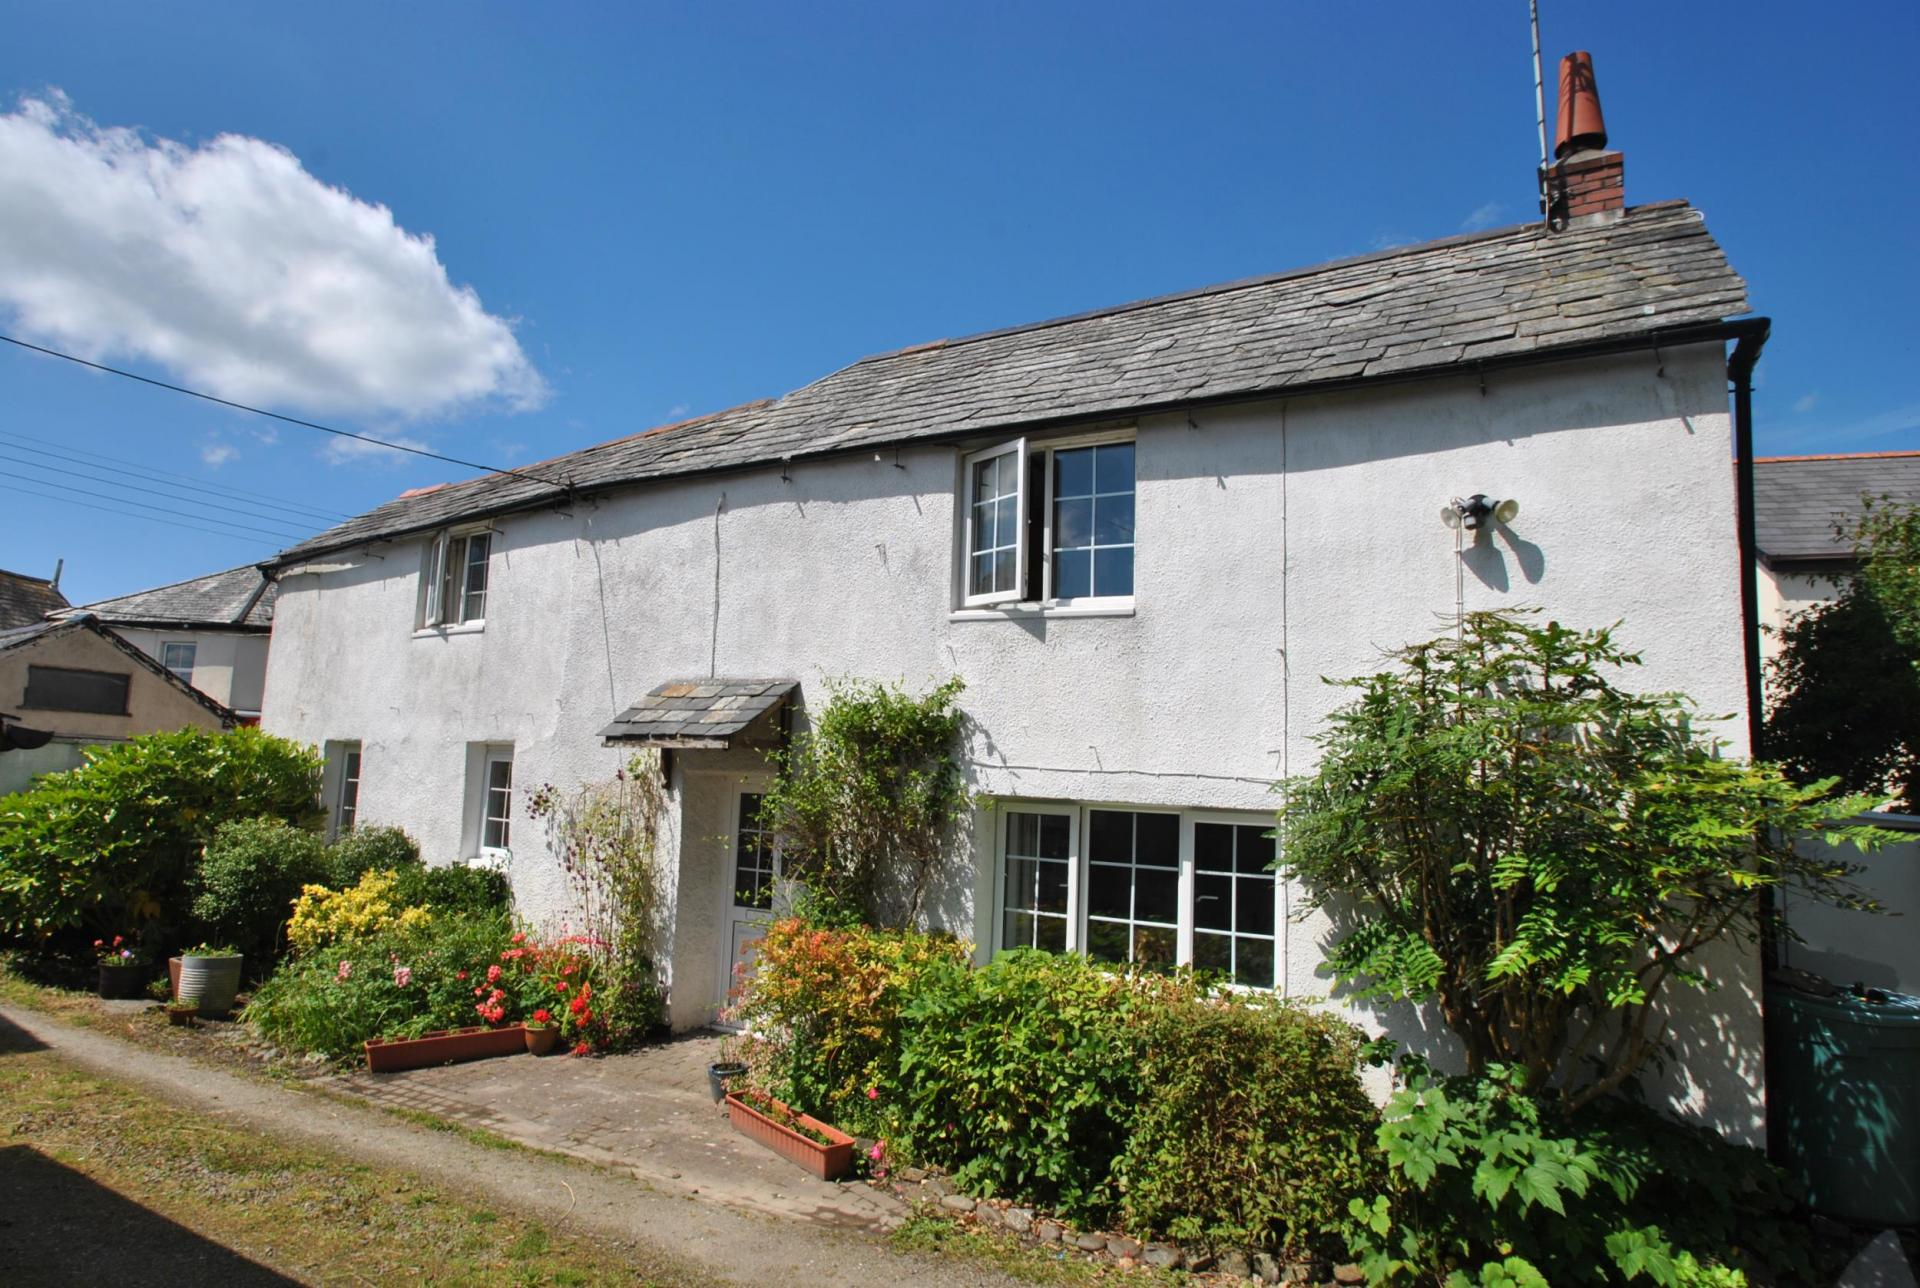 2 Bedroom Detached House For Sale In Bude